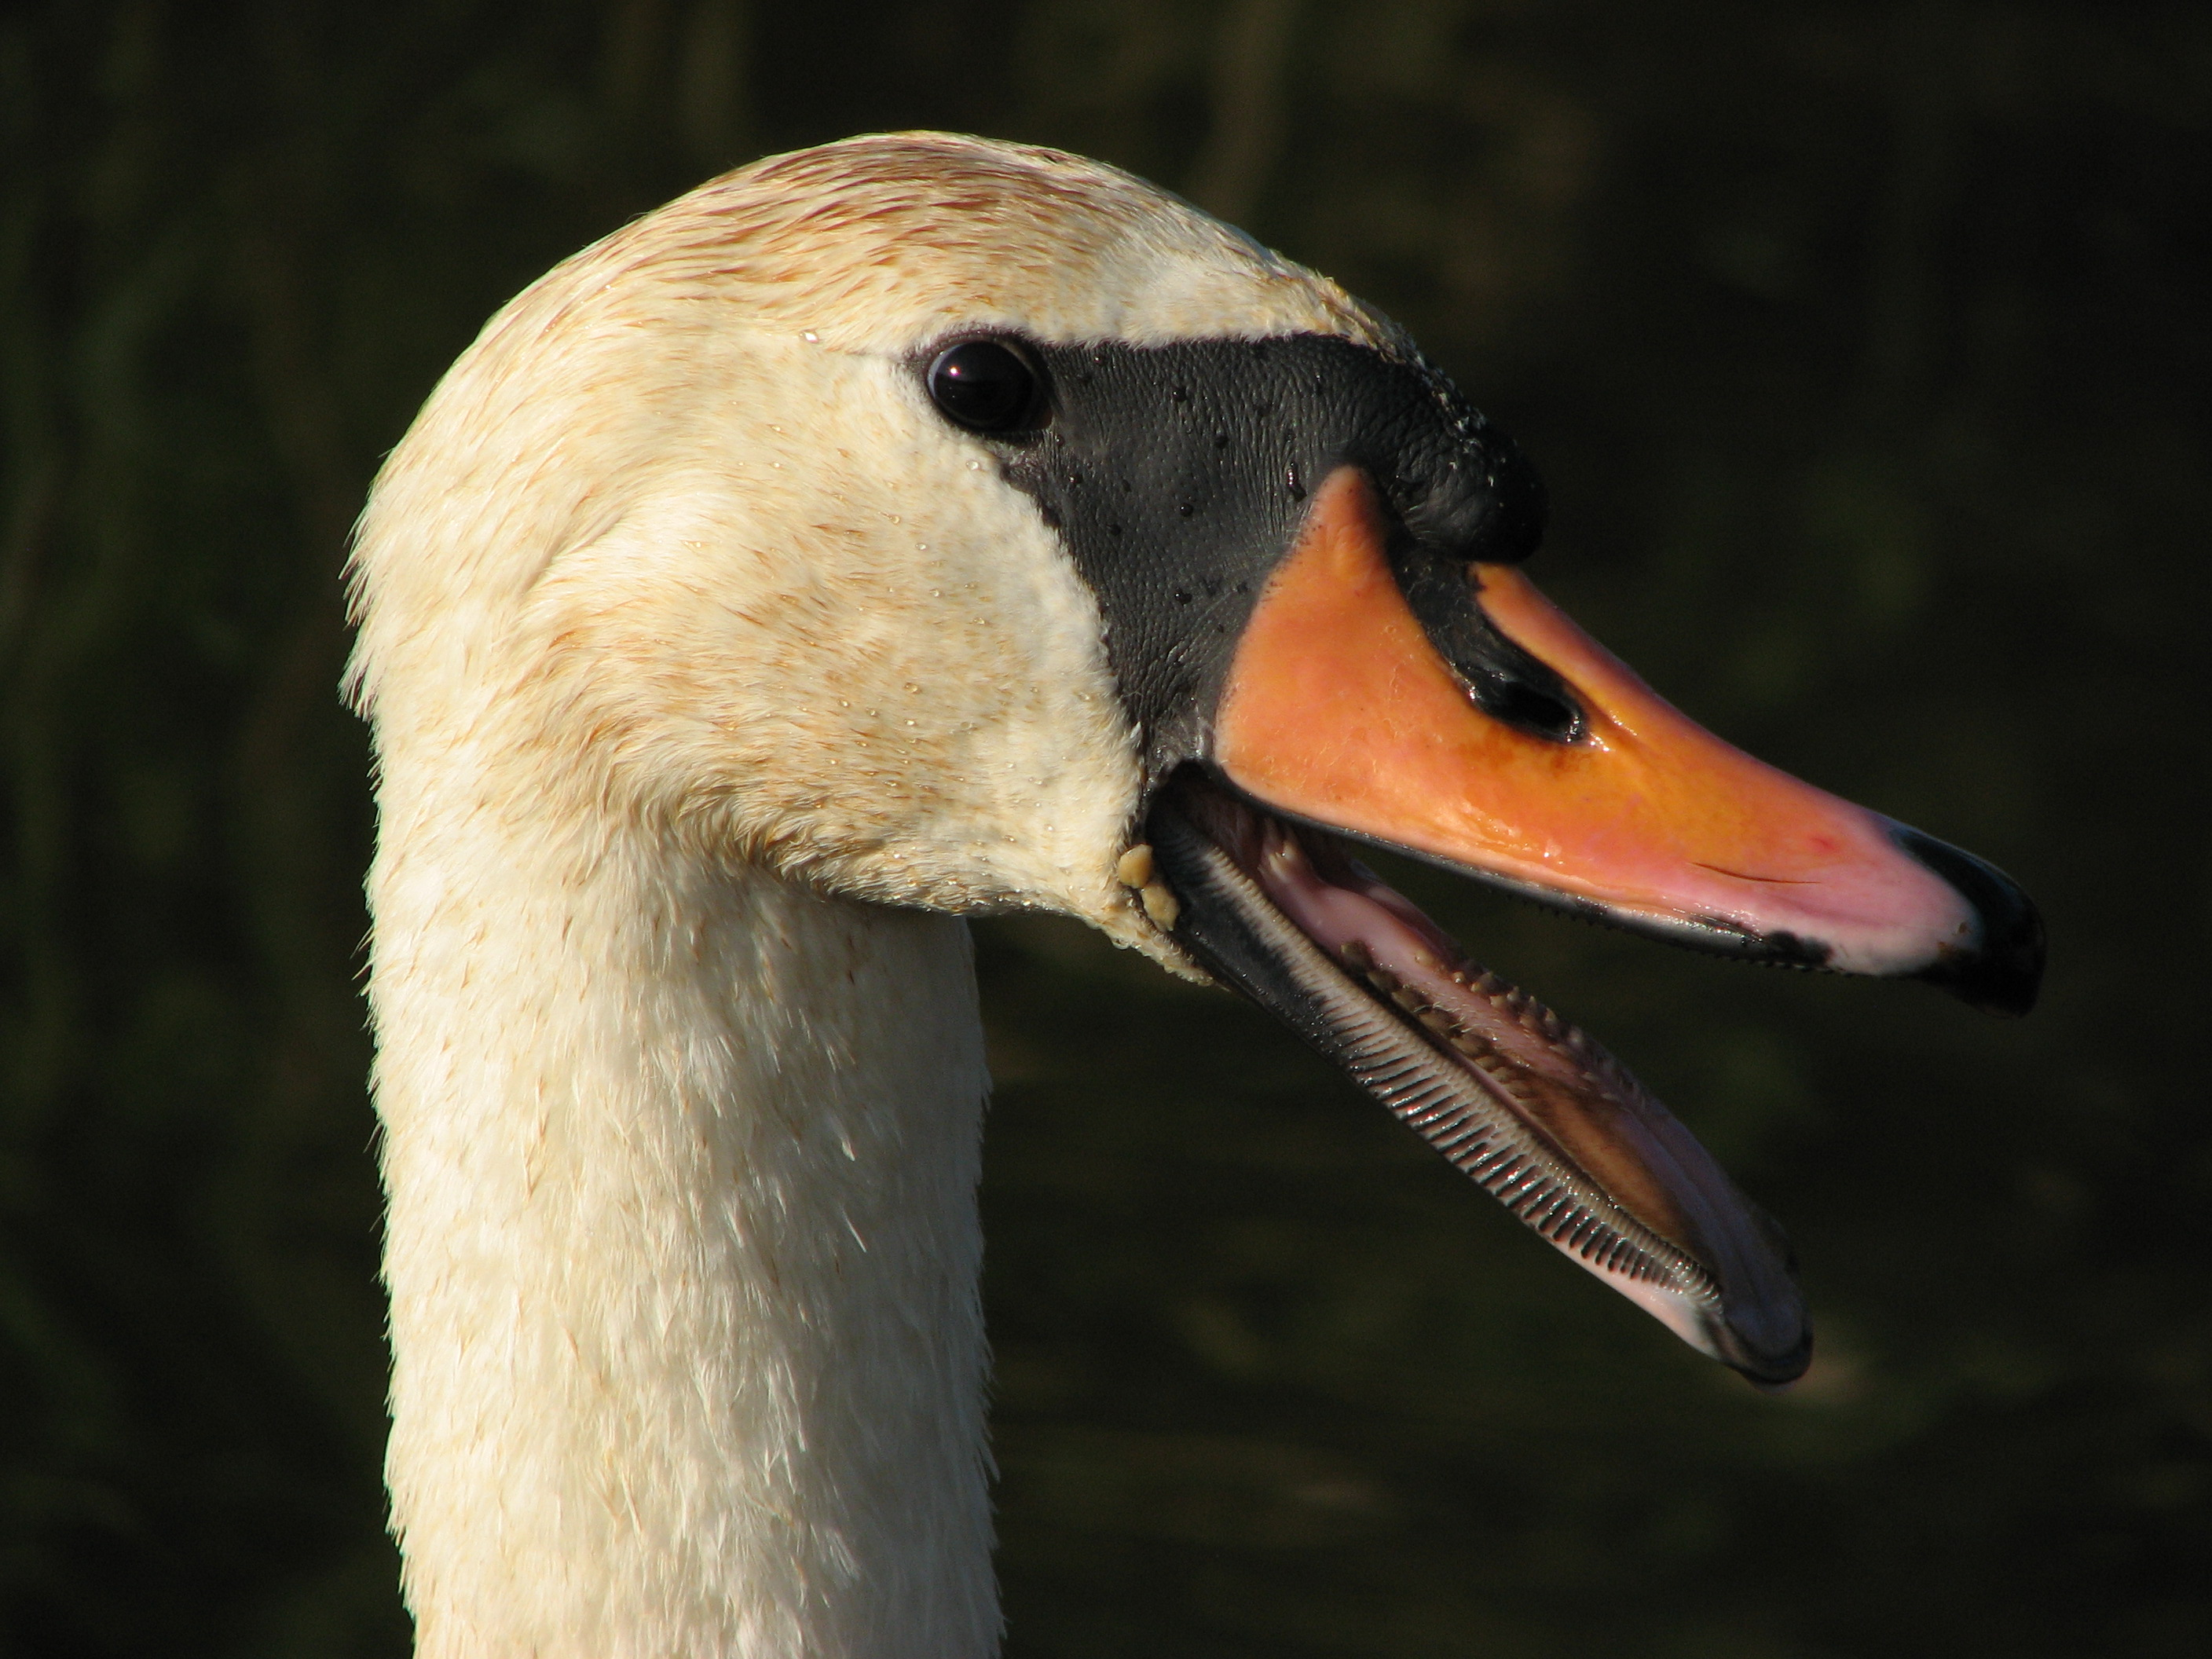 File Labut Samec Swan Male Zebetinsky Rybnik Jpg Wikimedia Commons But unlike other swans, they can lay multiple. https commons wikimedia org wiki file labu c5 a5 samec swan male c5 bdeb c4 9bt c3 adnsk c3 bd rybn c3 adk jpg